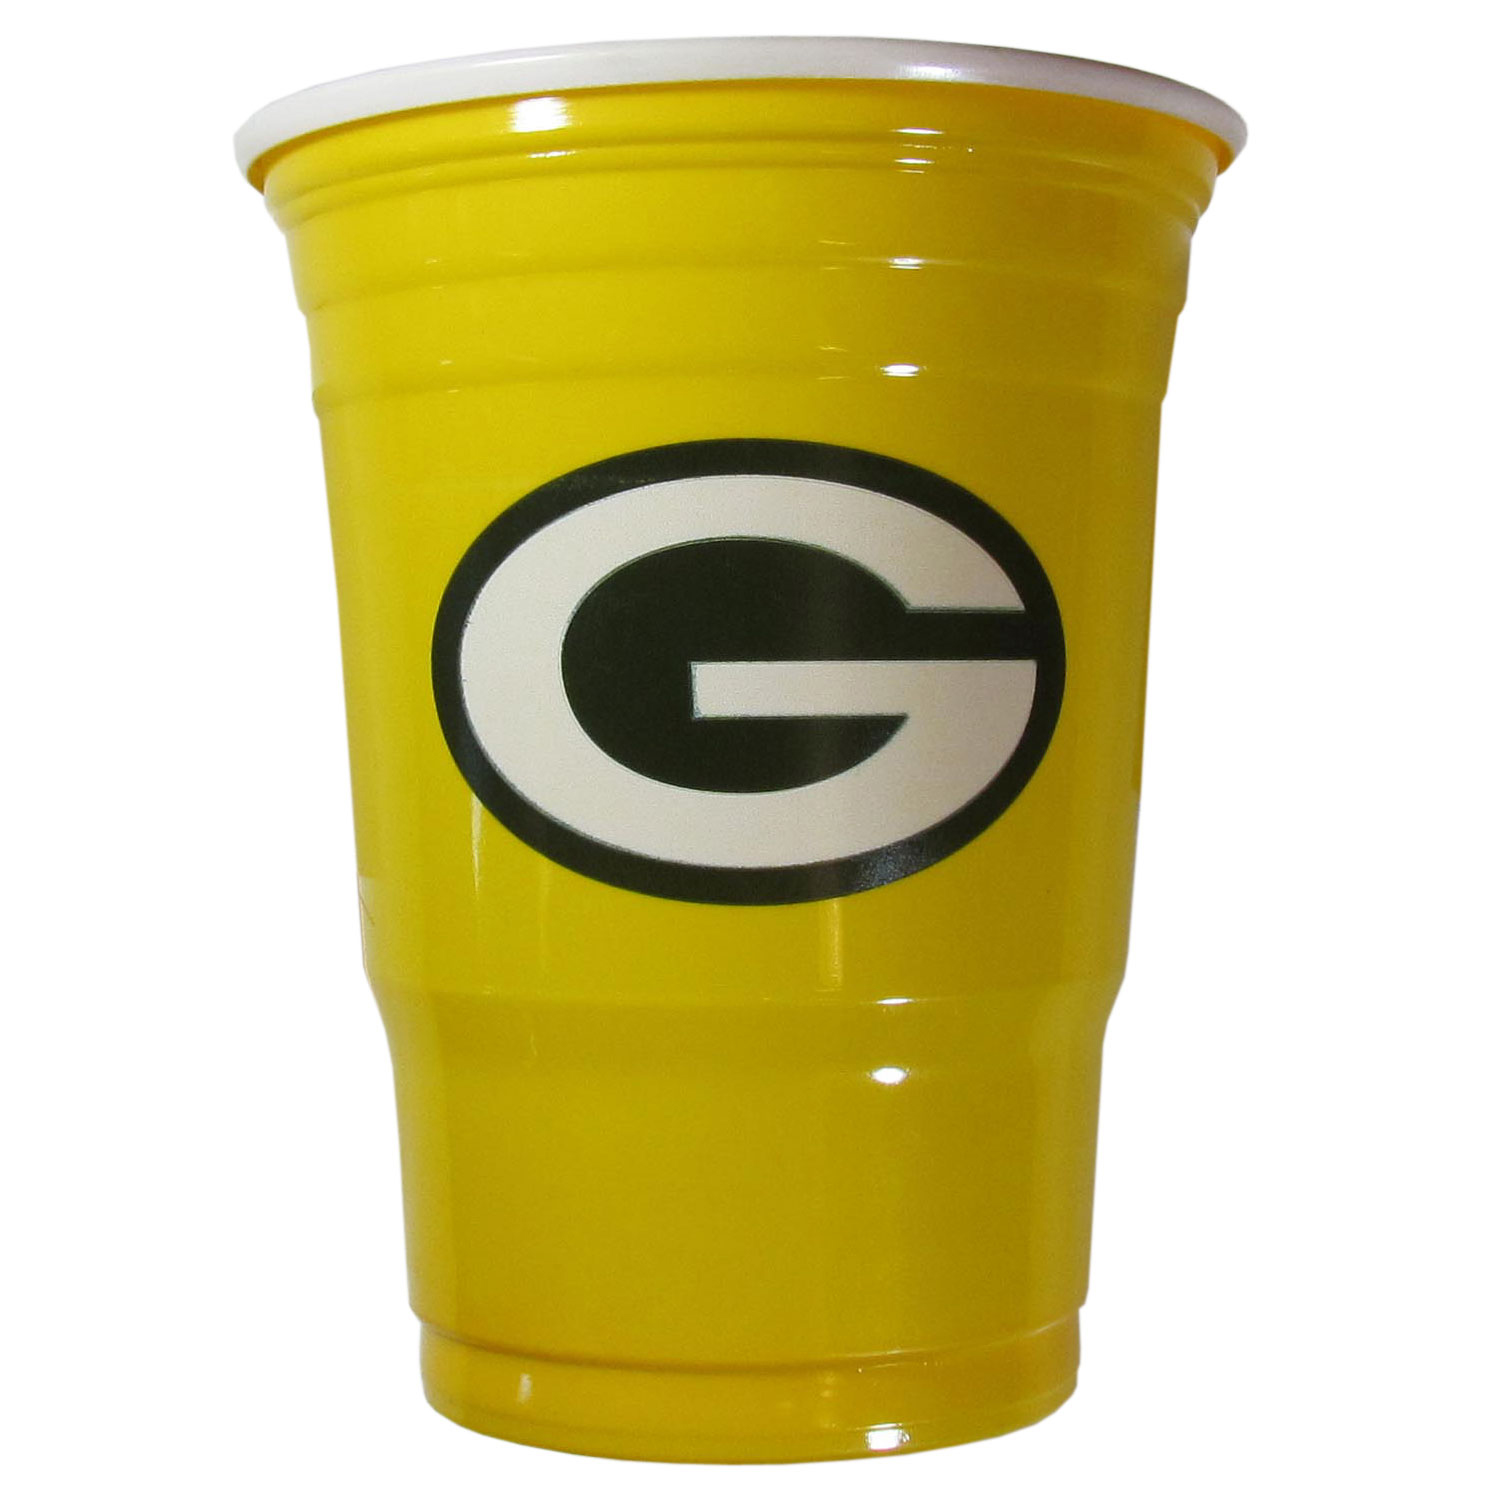 Green Bay Packers Plastic Game Day Cups - Our 18 ounce game day cups are what every tailgating or backyard events needs! The cups feature a big Green Bay Packers logo so you can show off your team pride. The popular 18 ounce size is perfect for drinks or ping pong balls! Sold in sleeves of 18 cups.